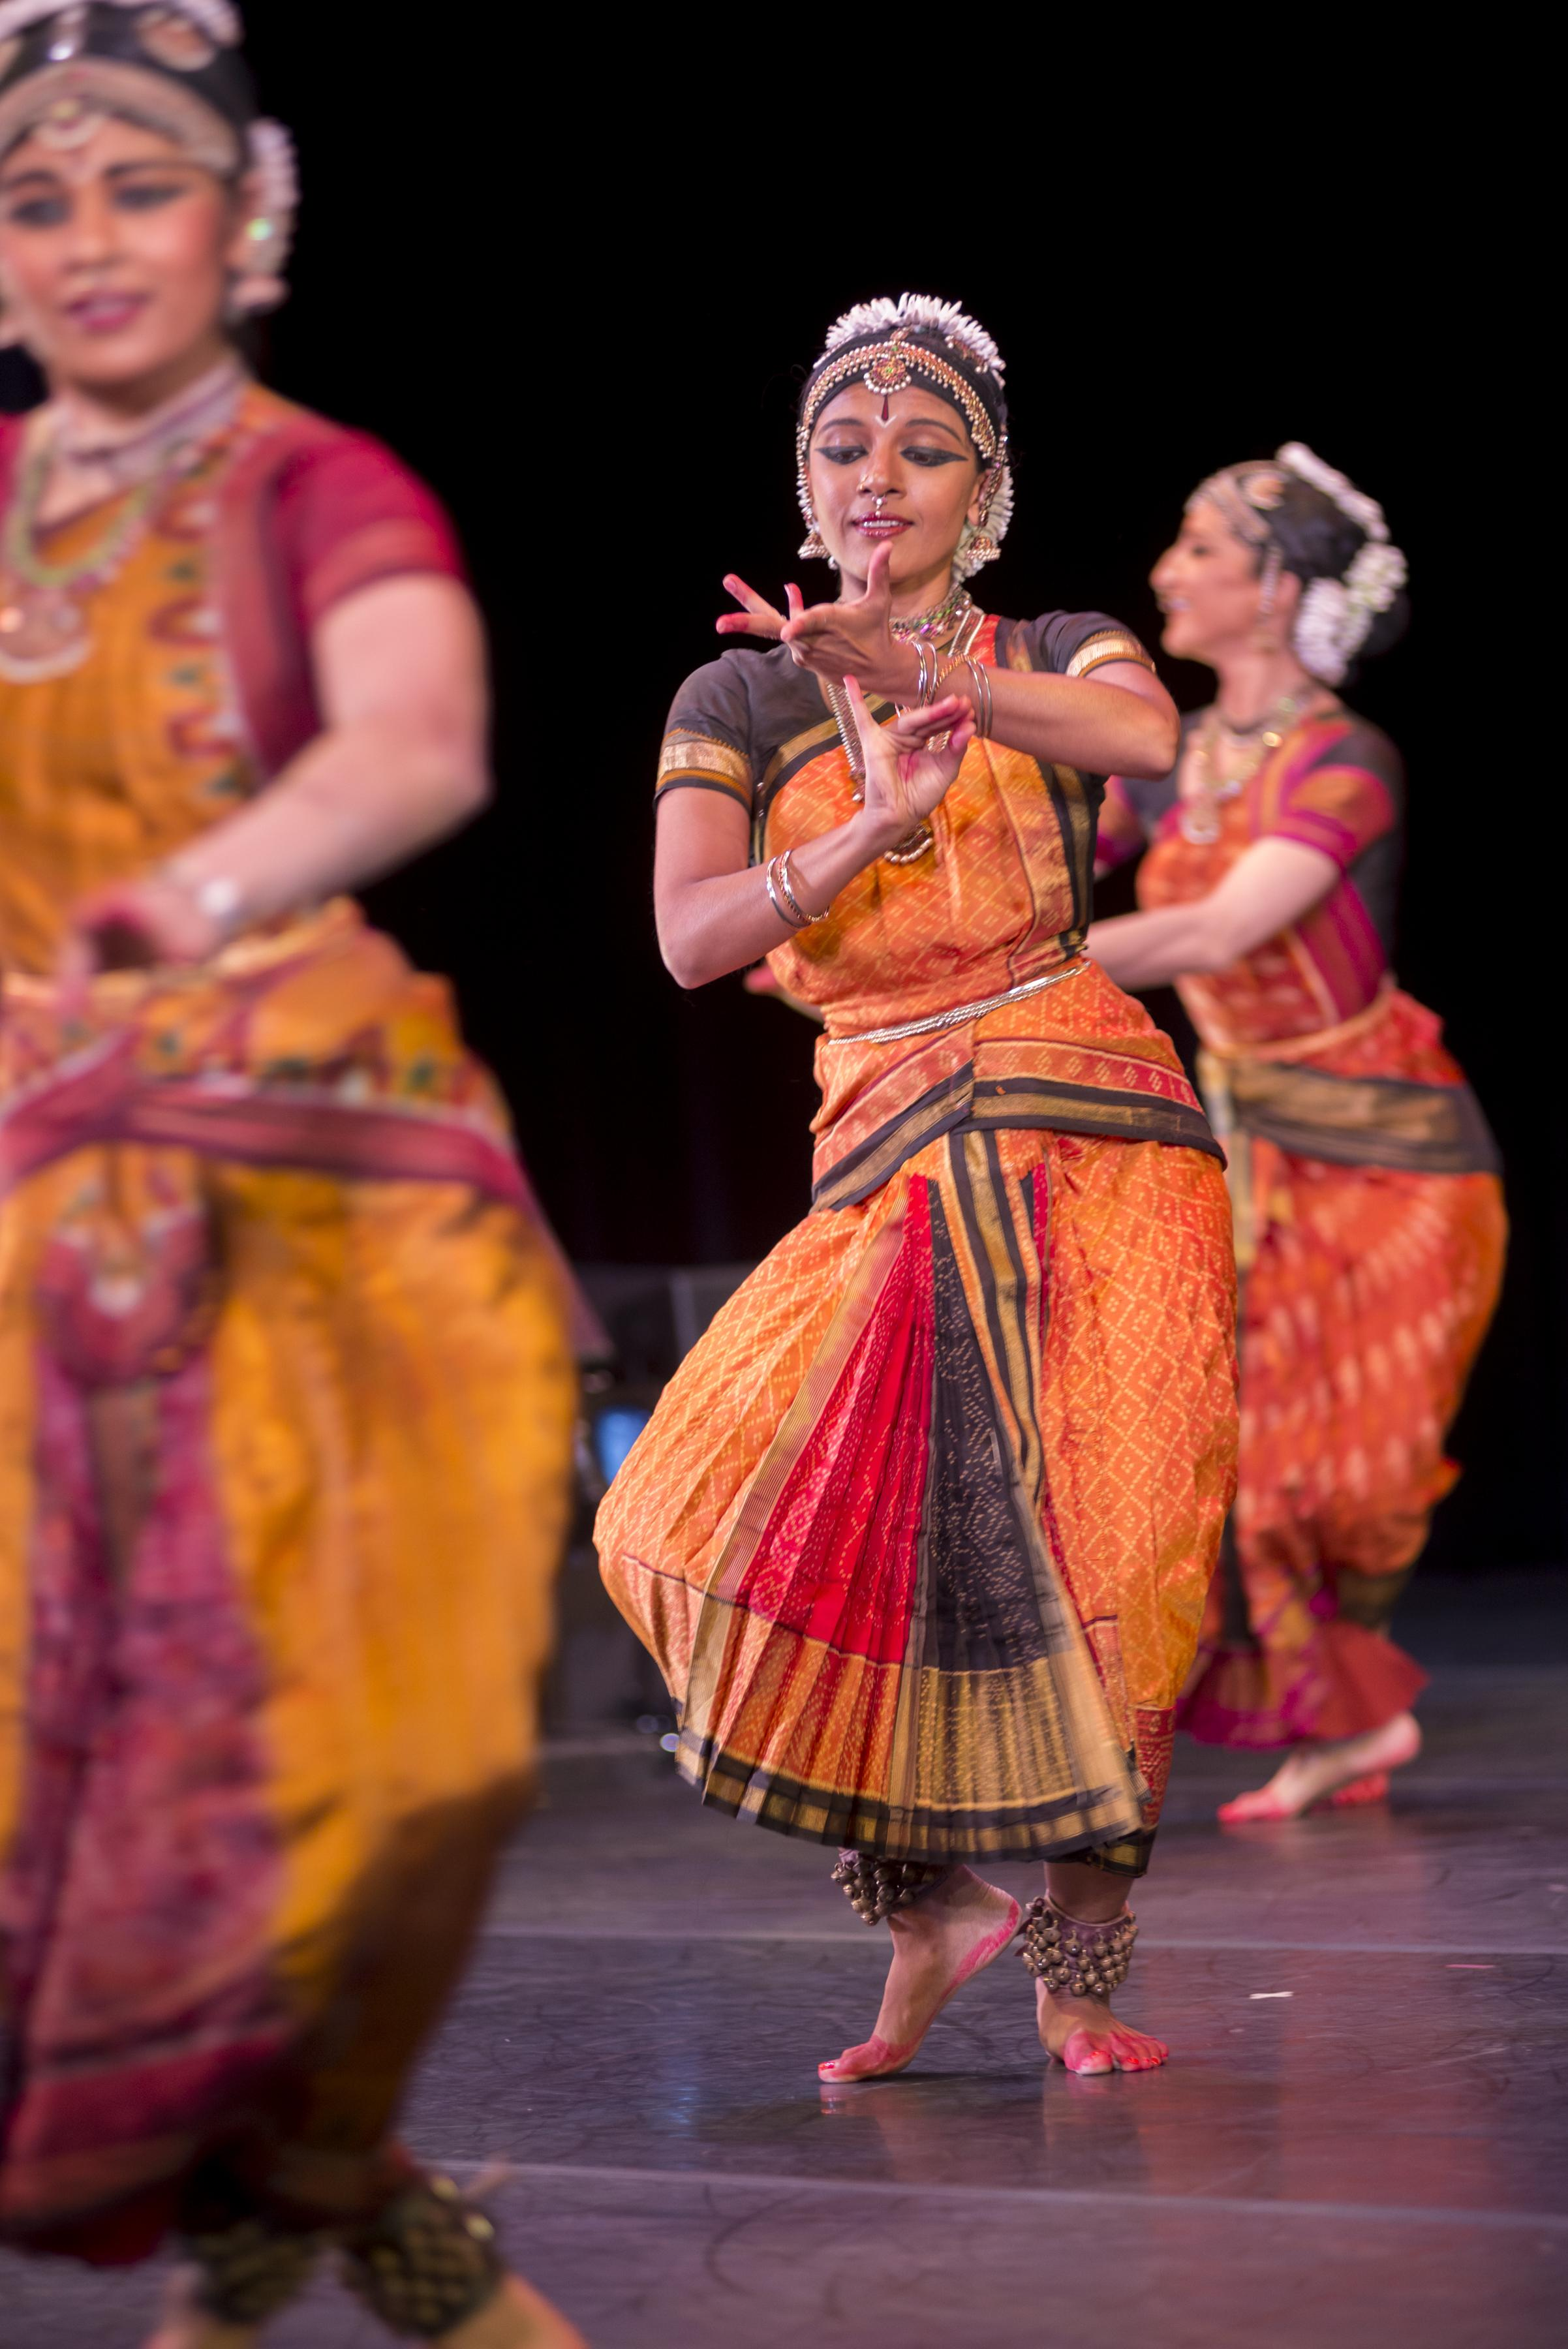 Three women on stage wearing Indian saris, elaborate head pieces, and jewelry, dance barefoot on a stage with arms bent and fingers flexed.